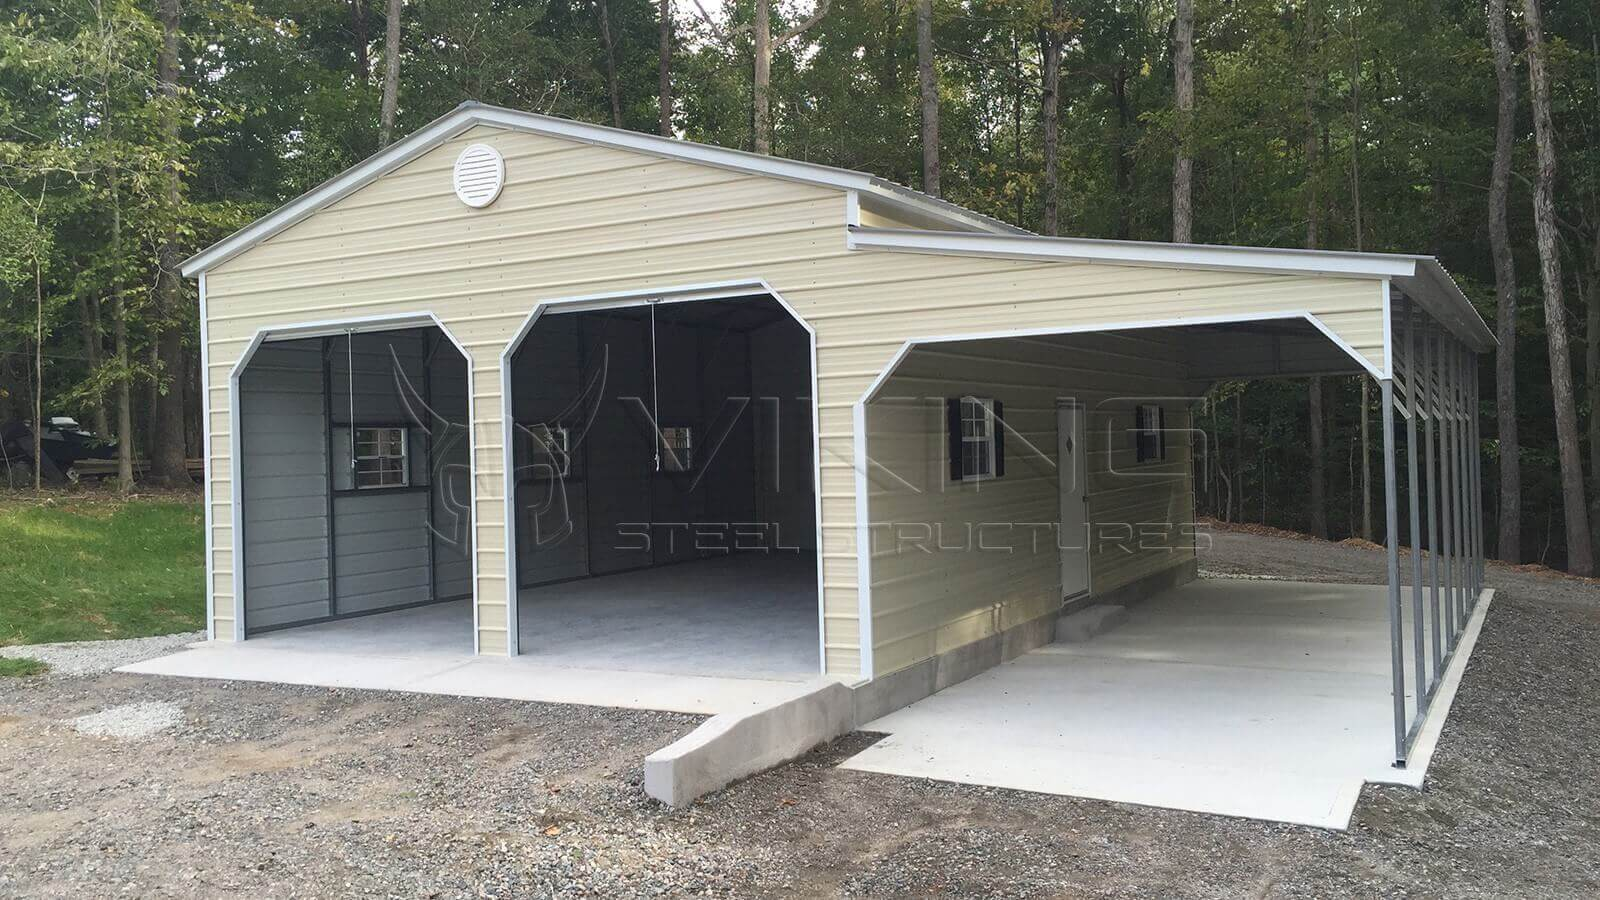 Viking steel structures metal carports barns garages for Carports and garages